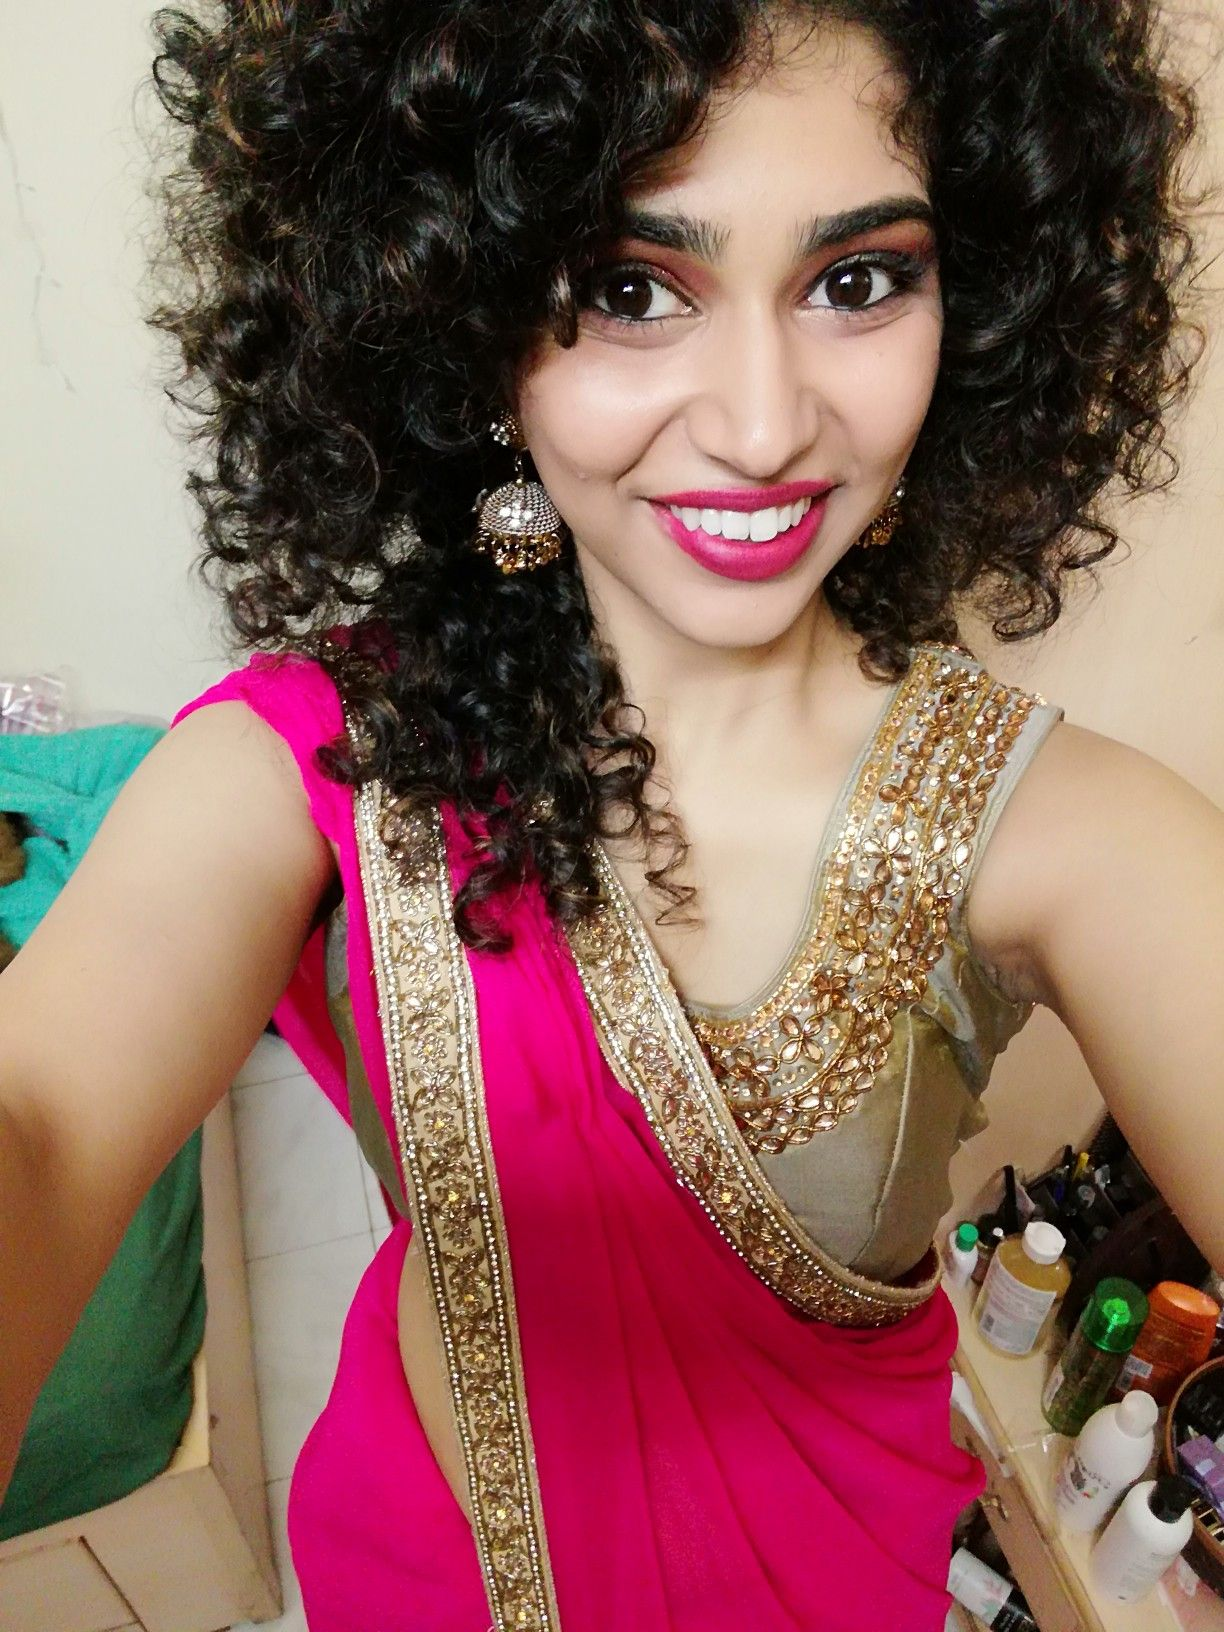 Curly Hair Saree Curled Hairstyles Saree Hairstyles Curly Hair Styles